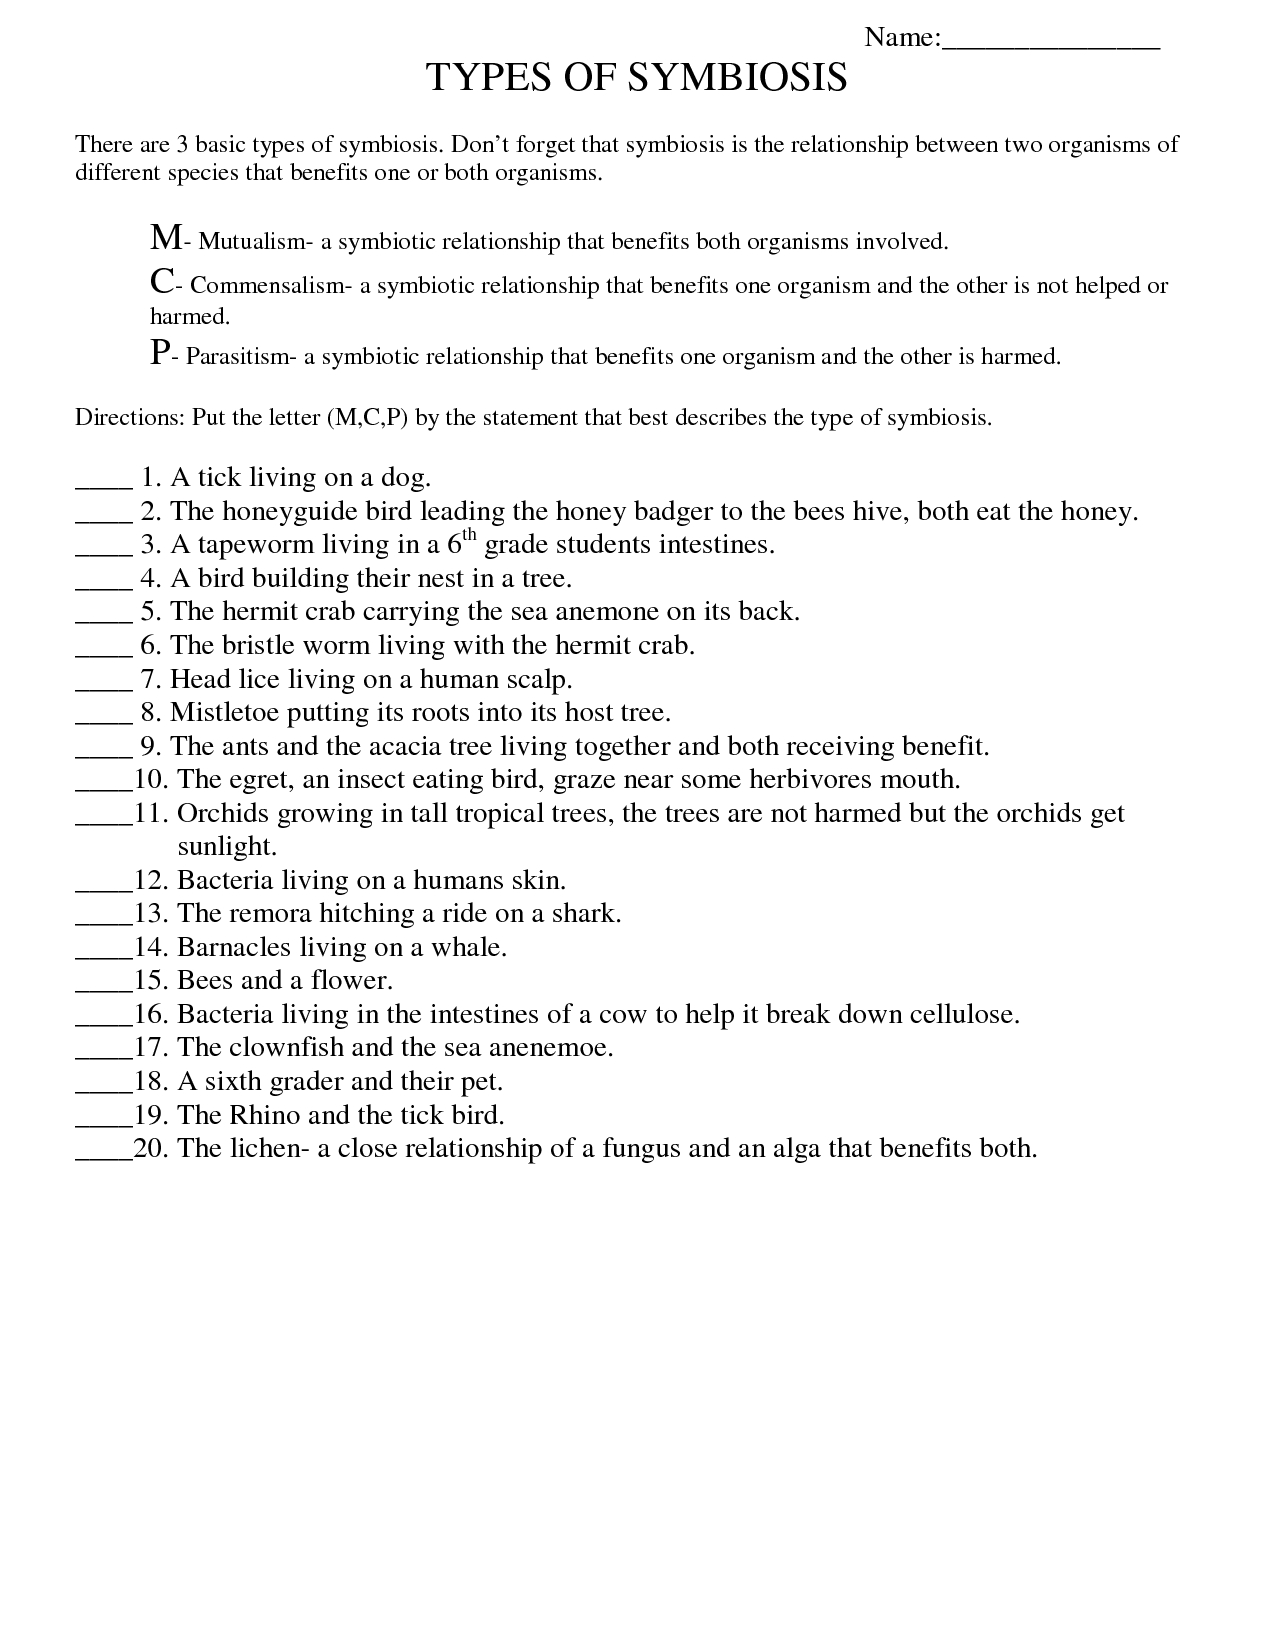 Symbiosis Worksheet: Free Printable Worksheets On High School Bio | Free Printable Biology Worksheets For High School